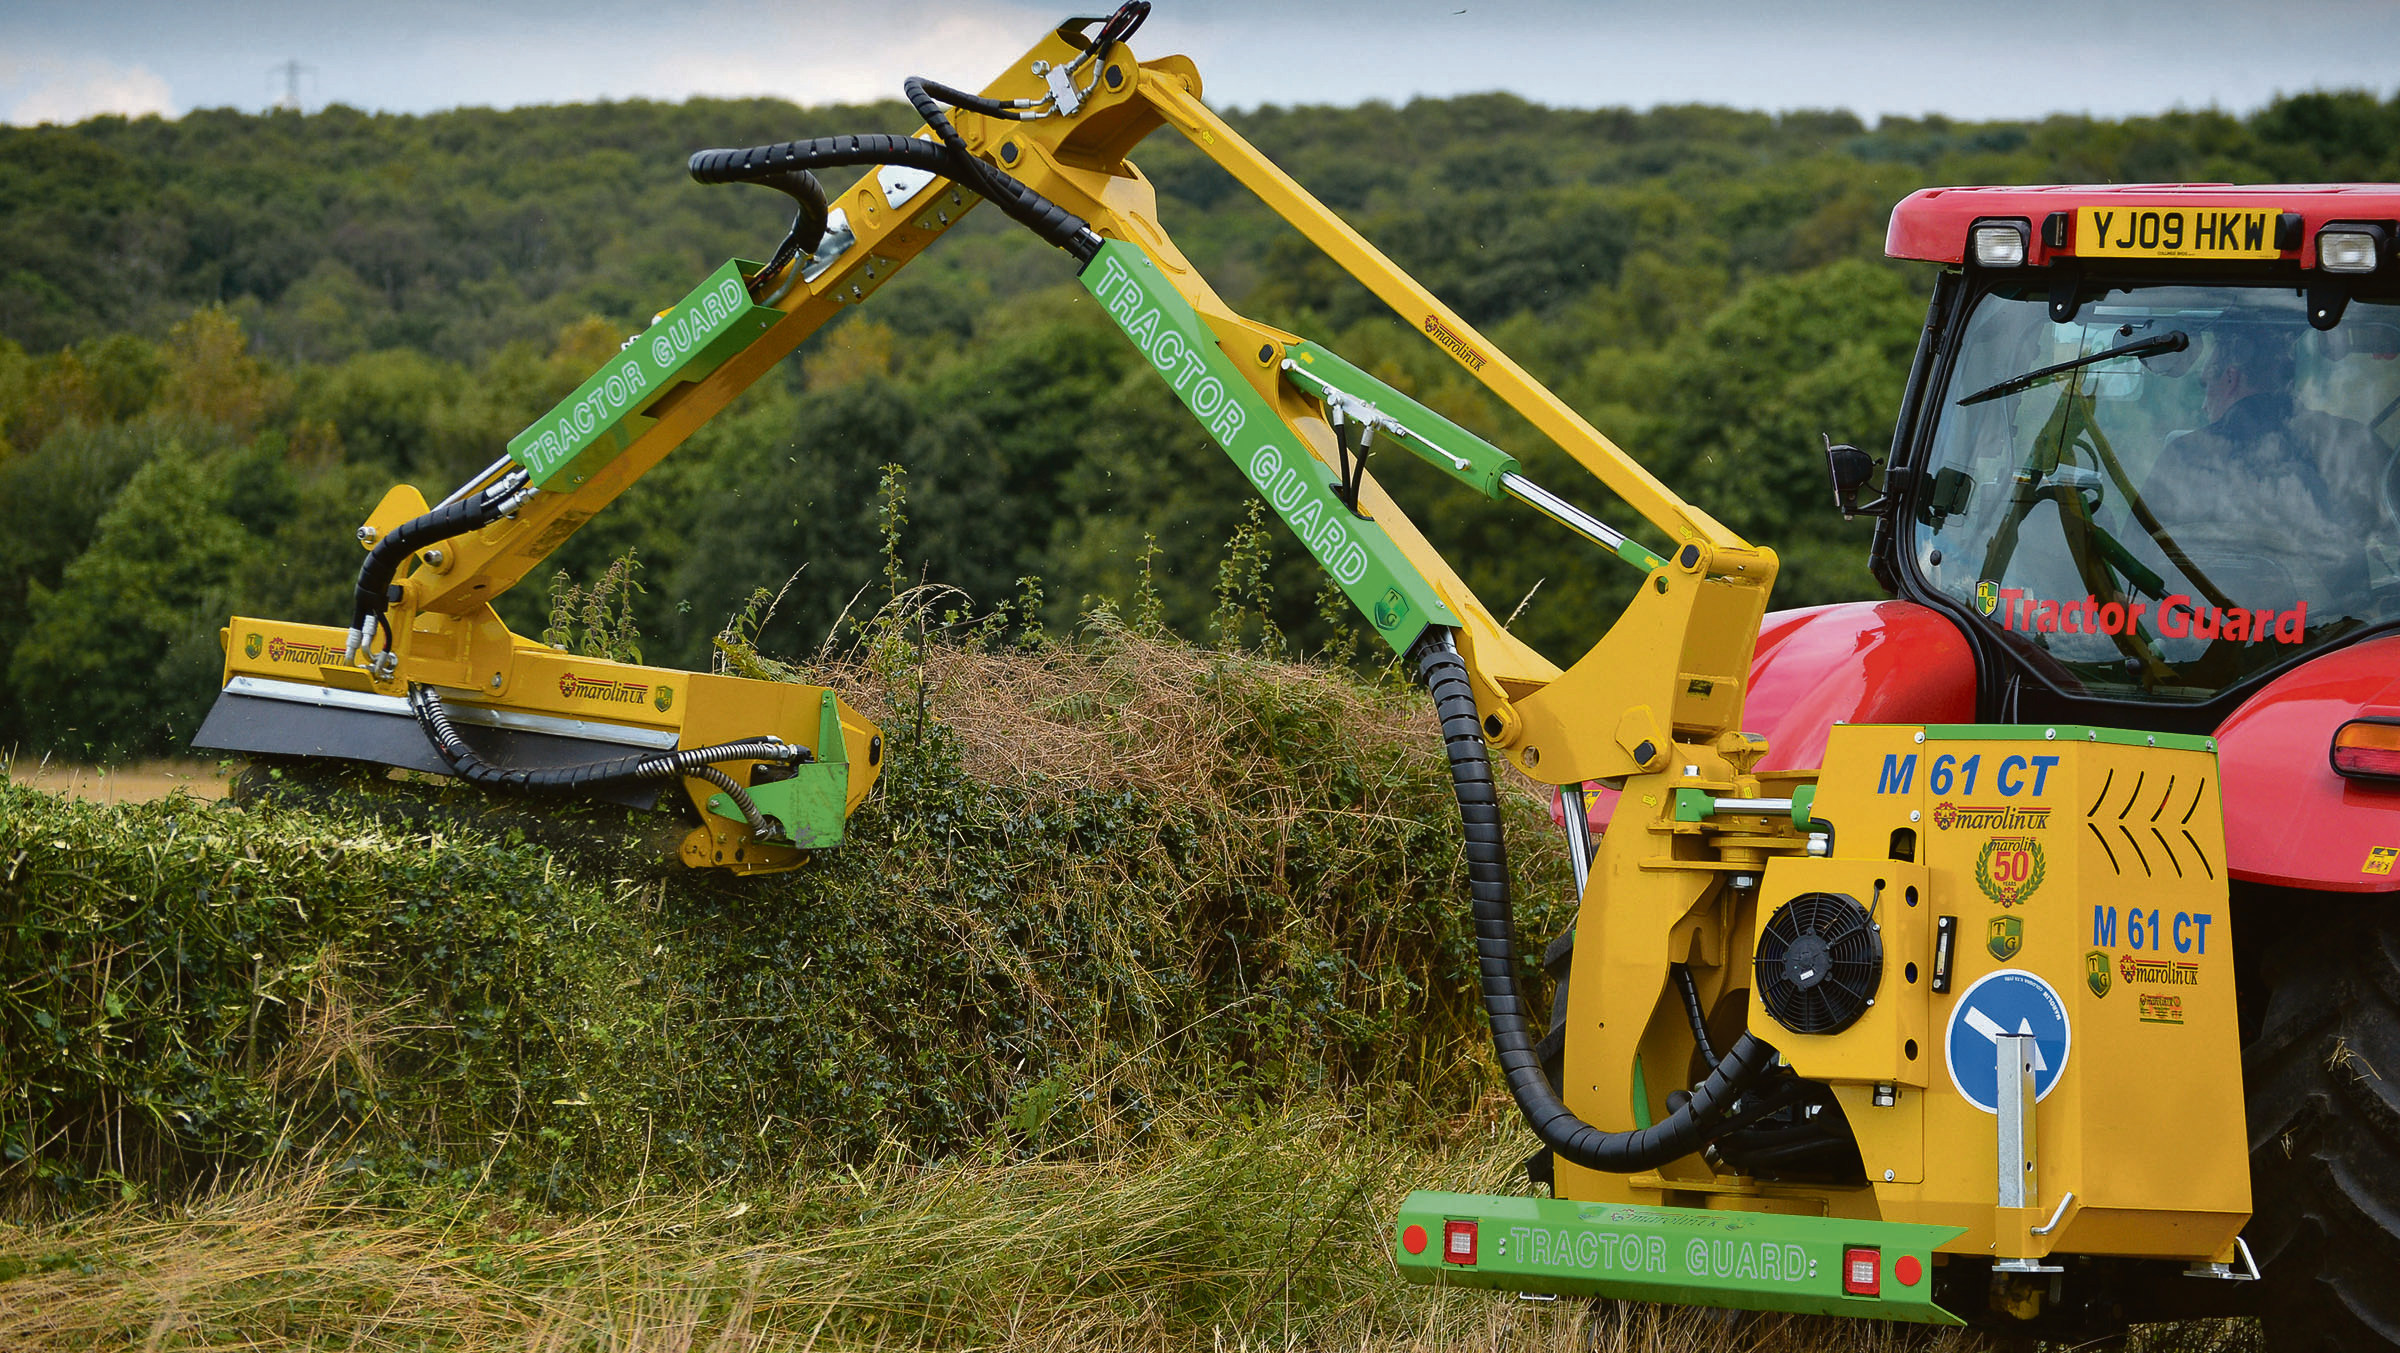 On test: Marolin UK's alternative to mainstream hedgecutters